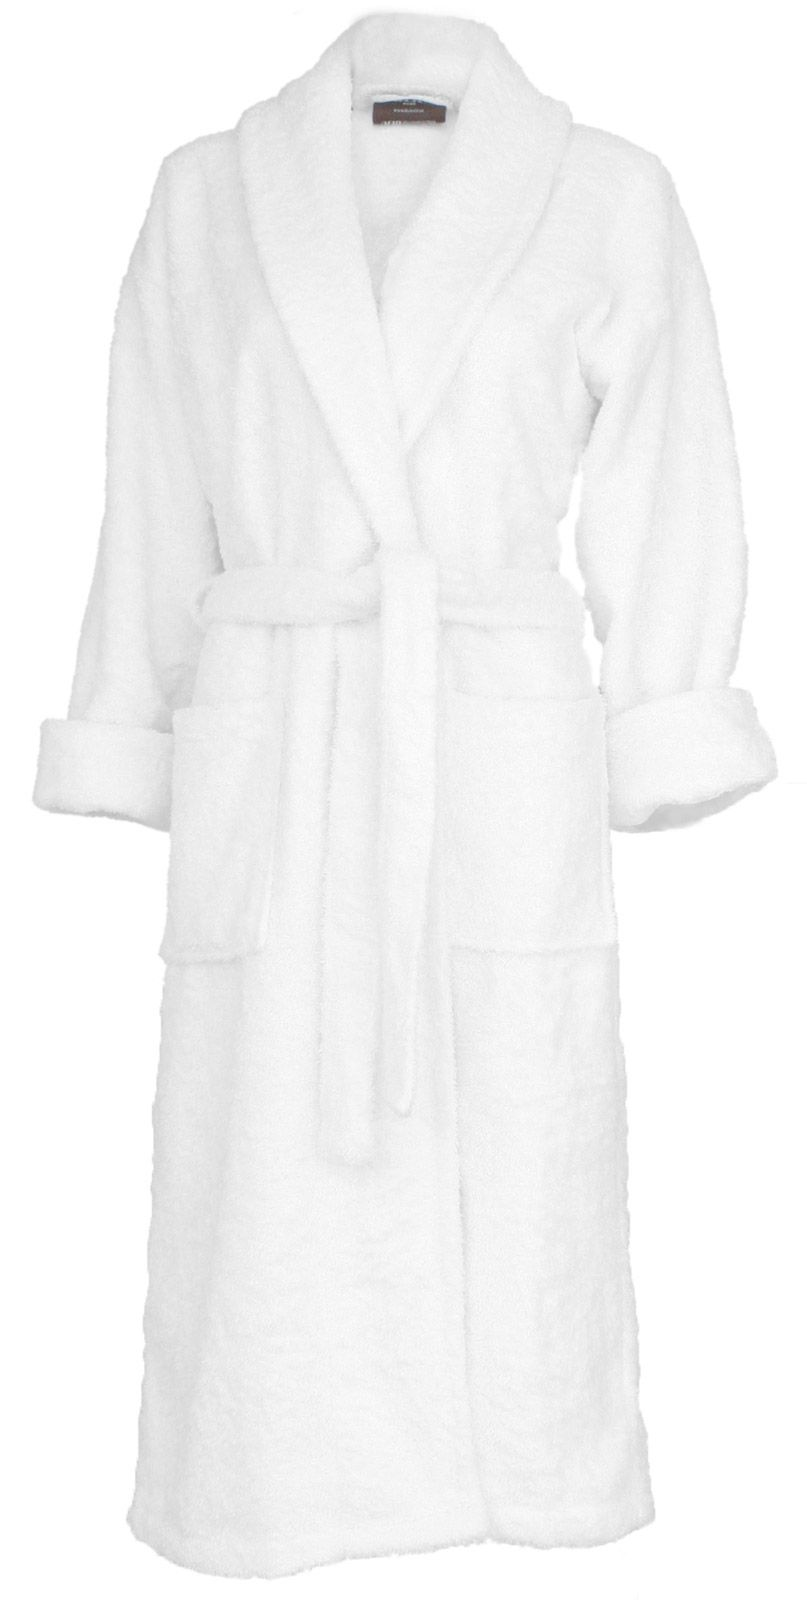 Amberley luxury towelling dressing gown for women by CottonVale ... d24e1cd41